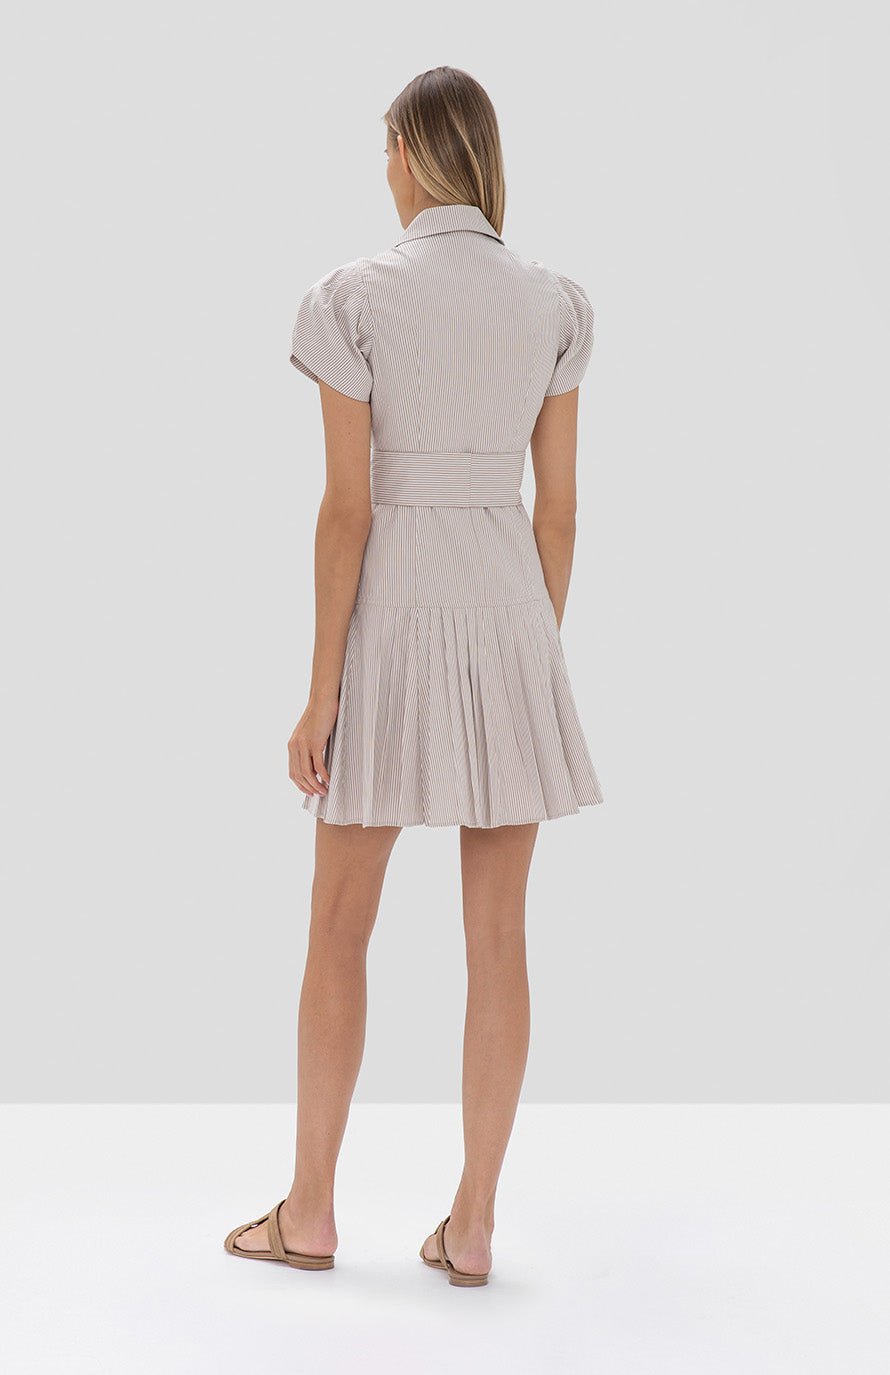 Haylee Dress Textured Tan Stripes - Rear View